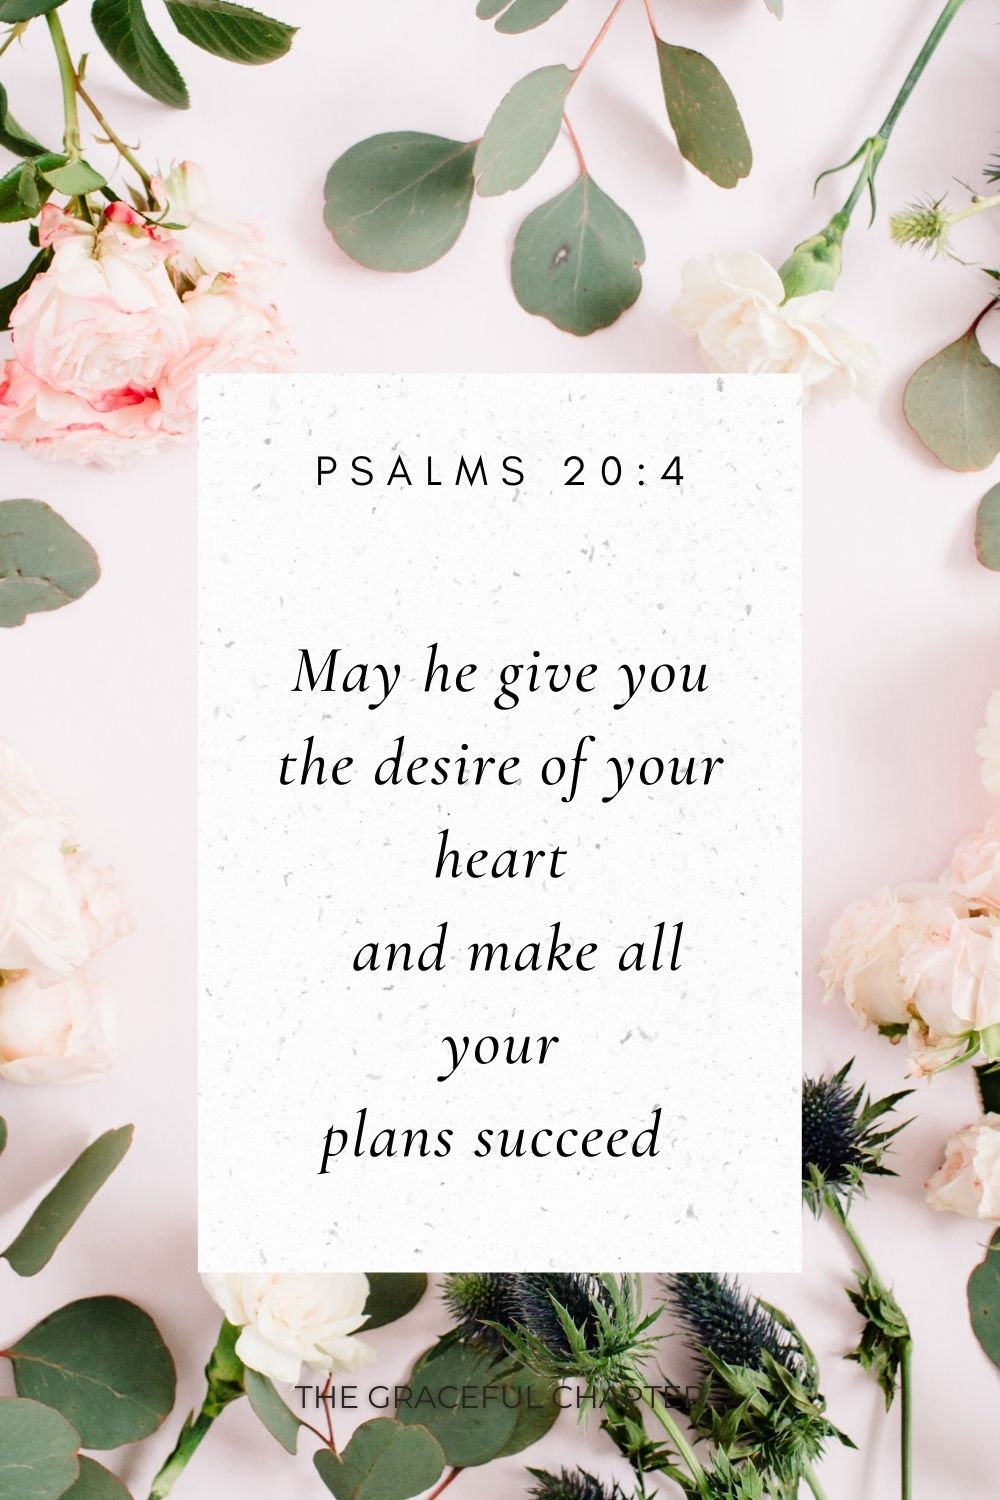 May he give you the desire of your heart     and make all your plans succeed  Psalms 20:4